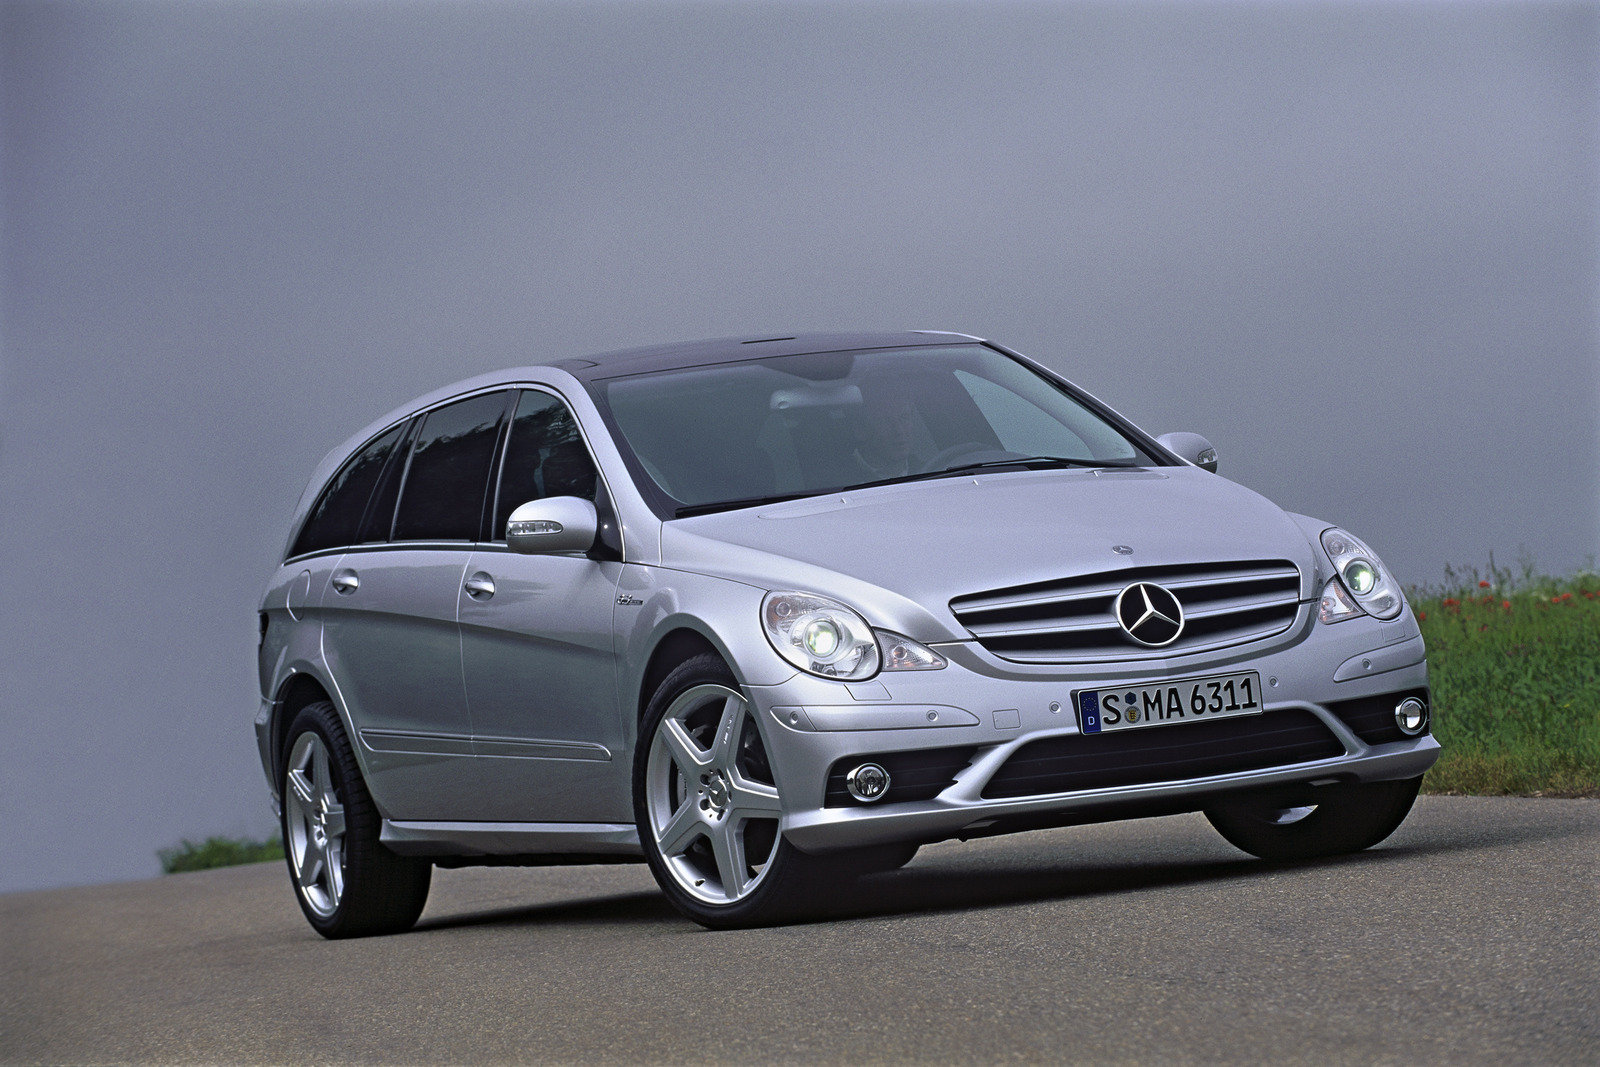 2007 mercedes r63 amg 4matic review top speed. Black Bedroom Furniture Sets. Home Design Ideas